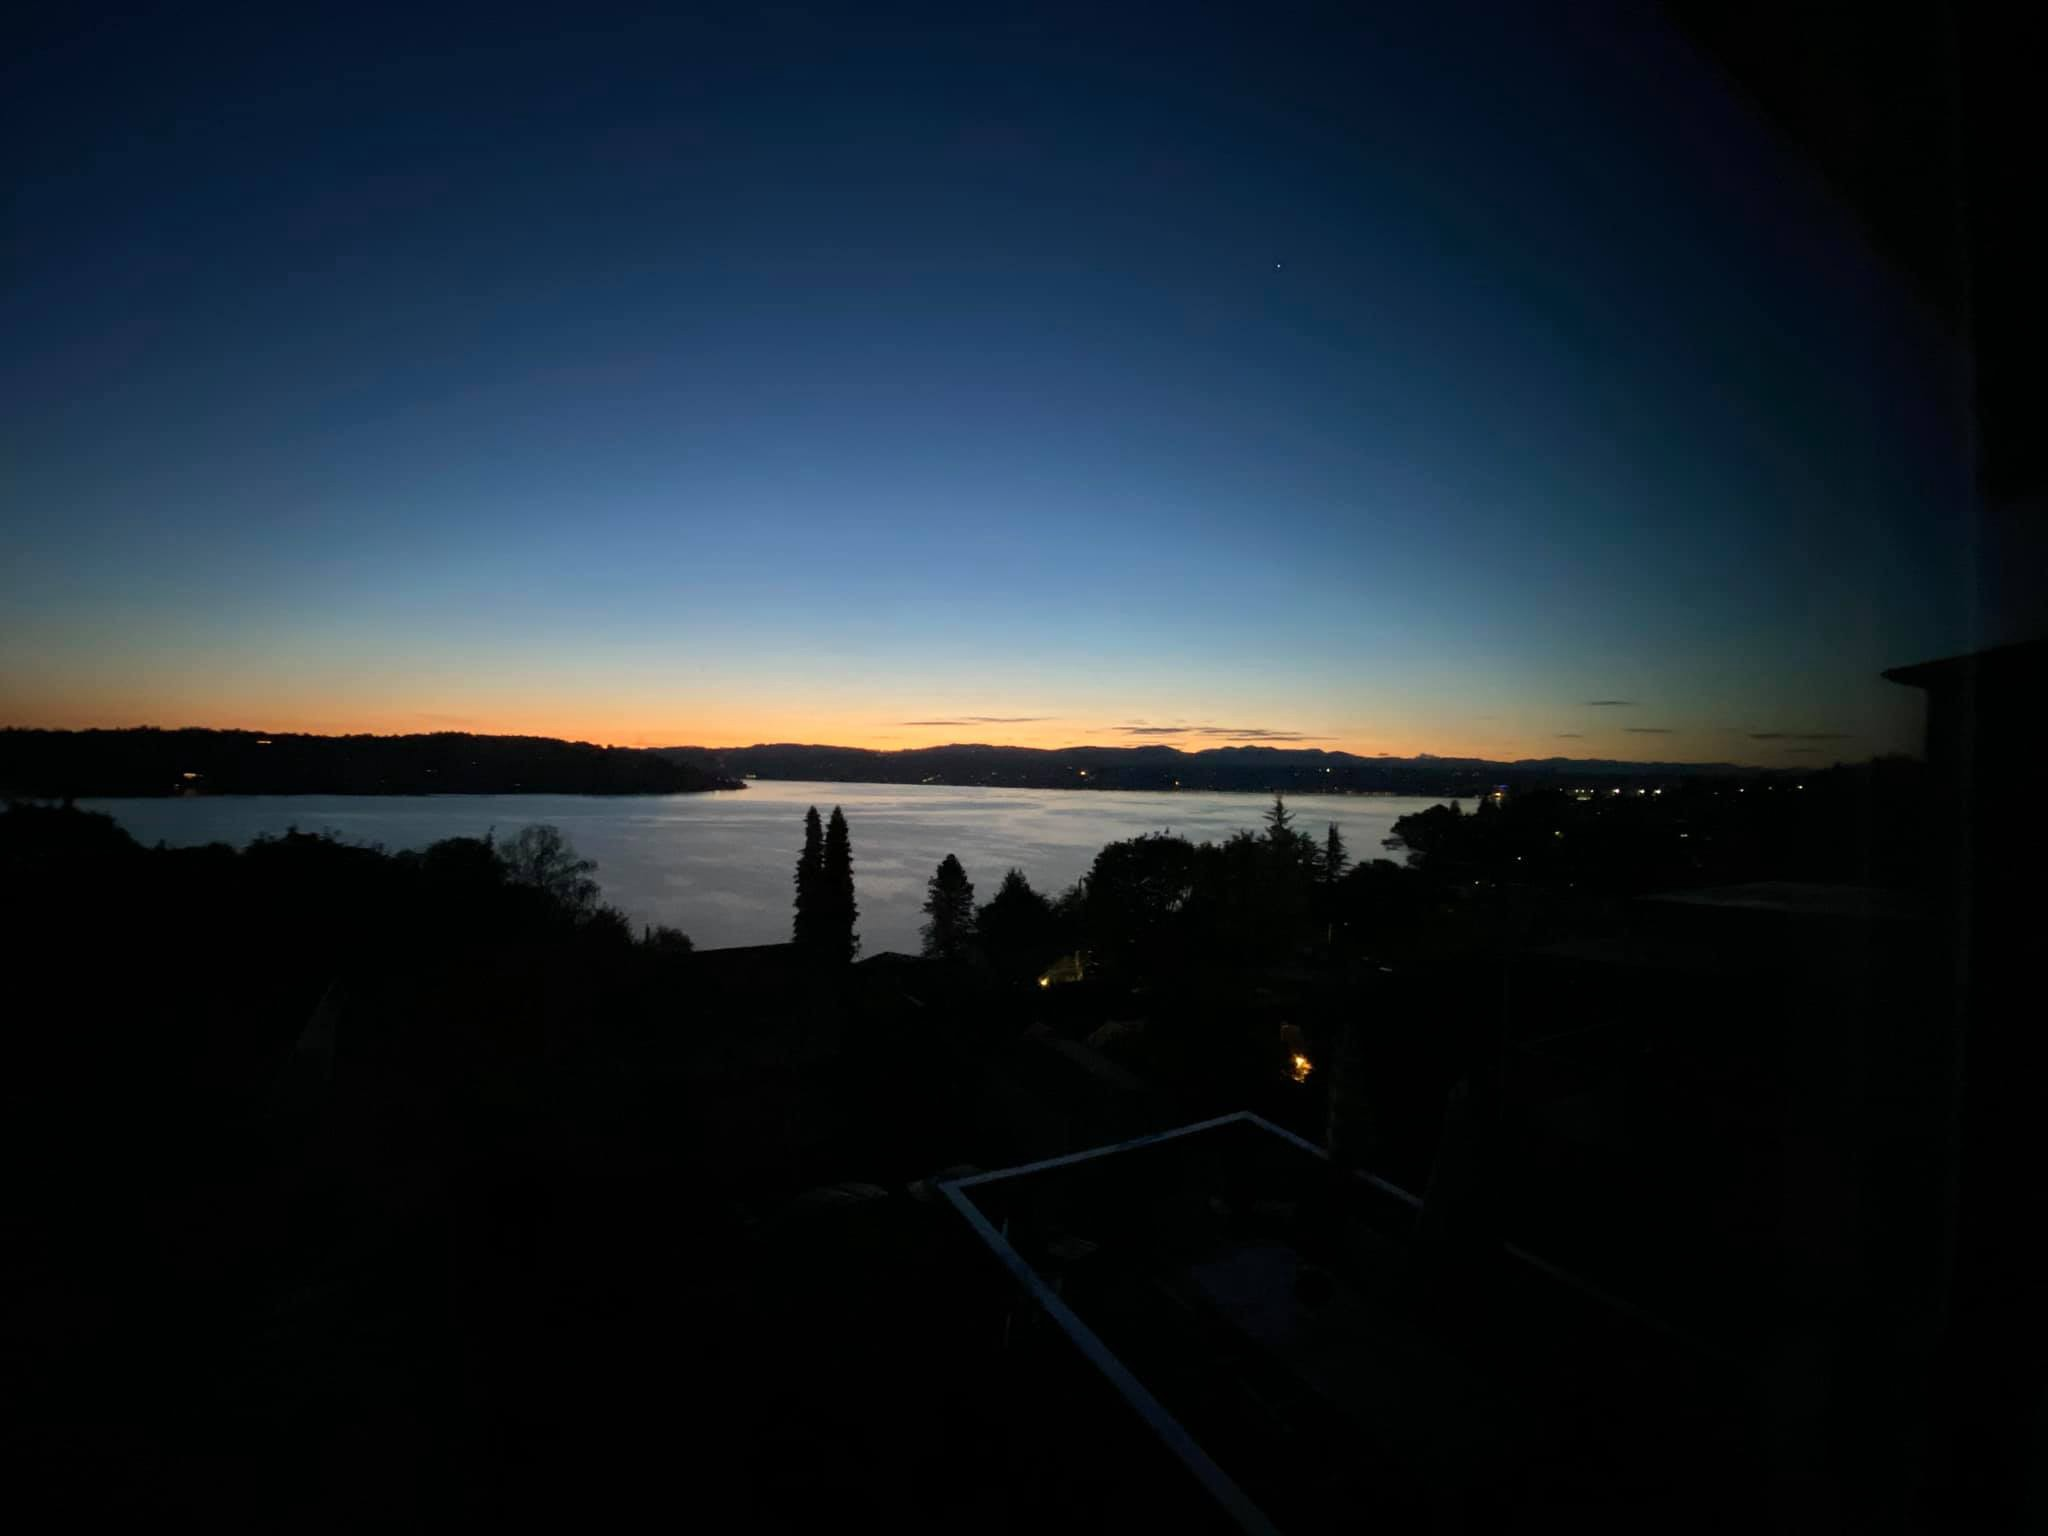 A sunrise over Lake Washington with a band of sherbet orange below rising bands of blue growing darker until almost black.